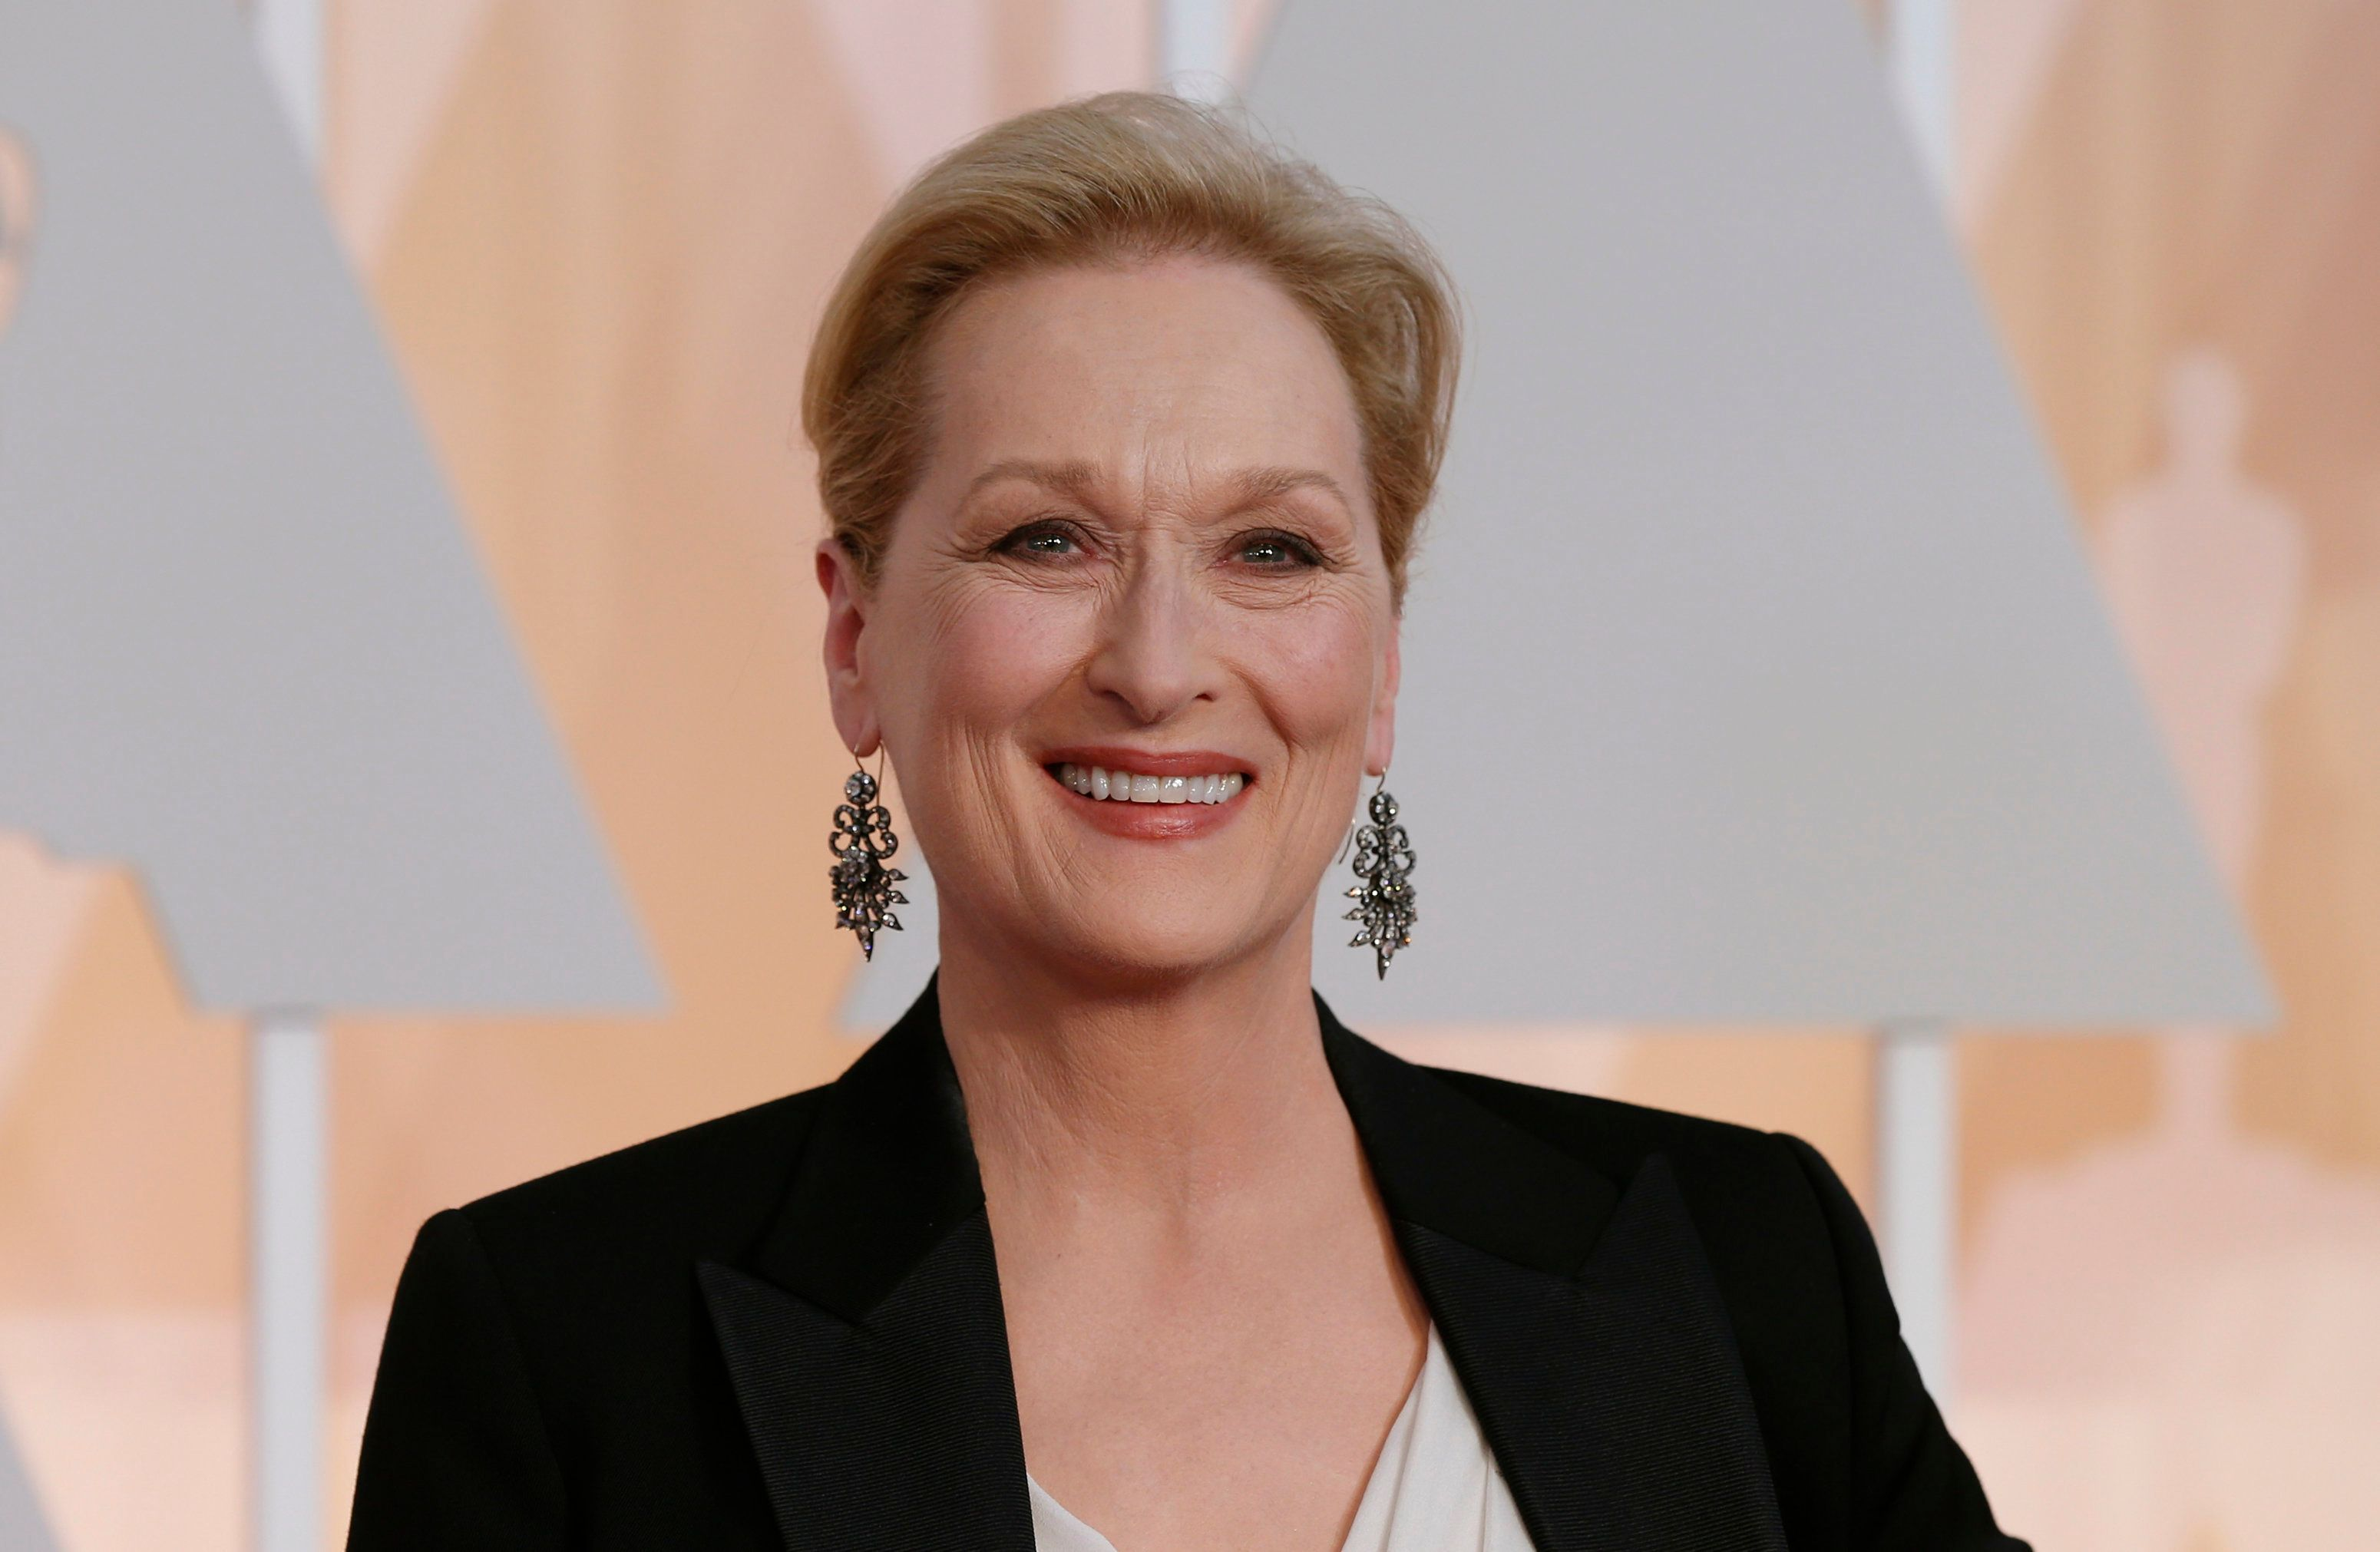 Actress Meryl Streep, wearing Fred Leighton Jewels, arrives at the 87th Academy Awards in Hollywood, California February 22, 2015.    REUTERS/Mario Anzuoni (UNITED STATES  - Tags: ENTERTAINMENT)  (OSCARS-ARRIVALS)